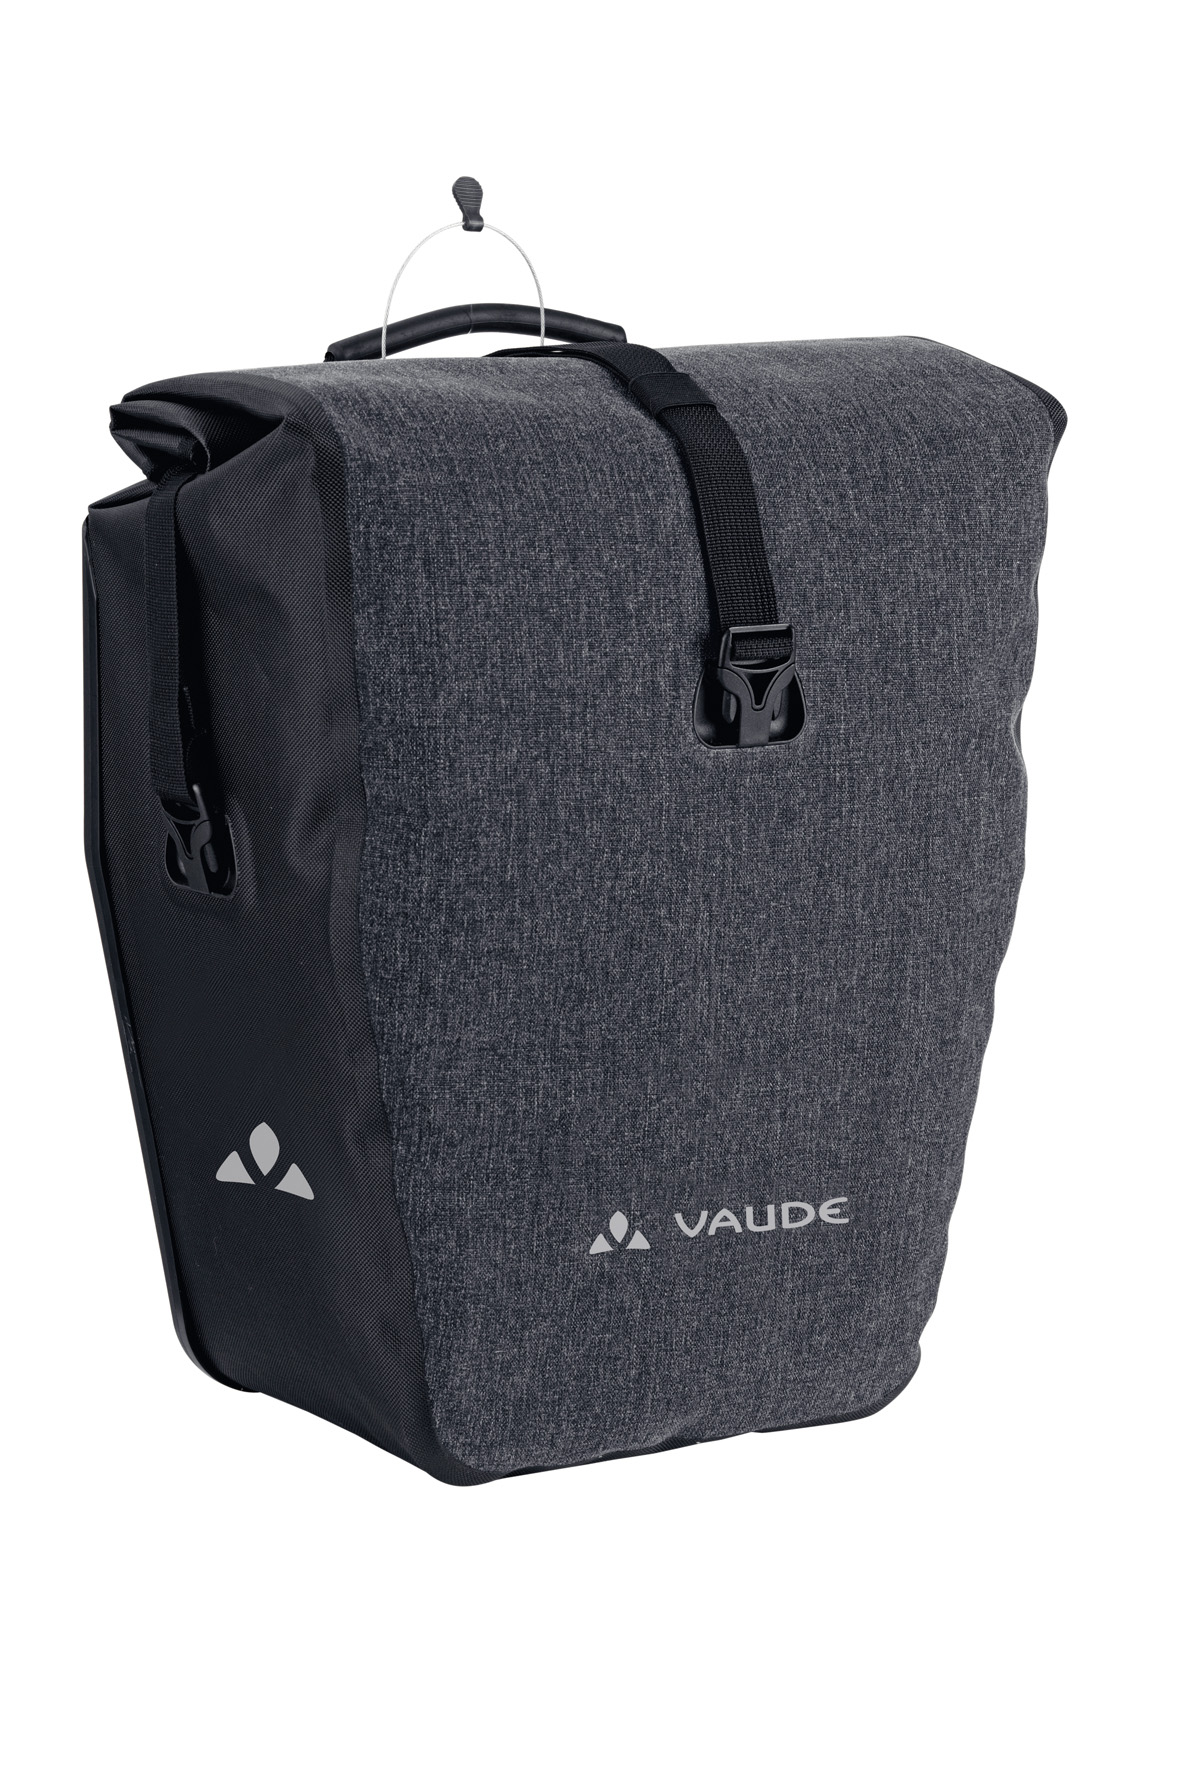 VAUDE Aqua Deluxe Single black  - schneider-sports